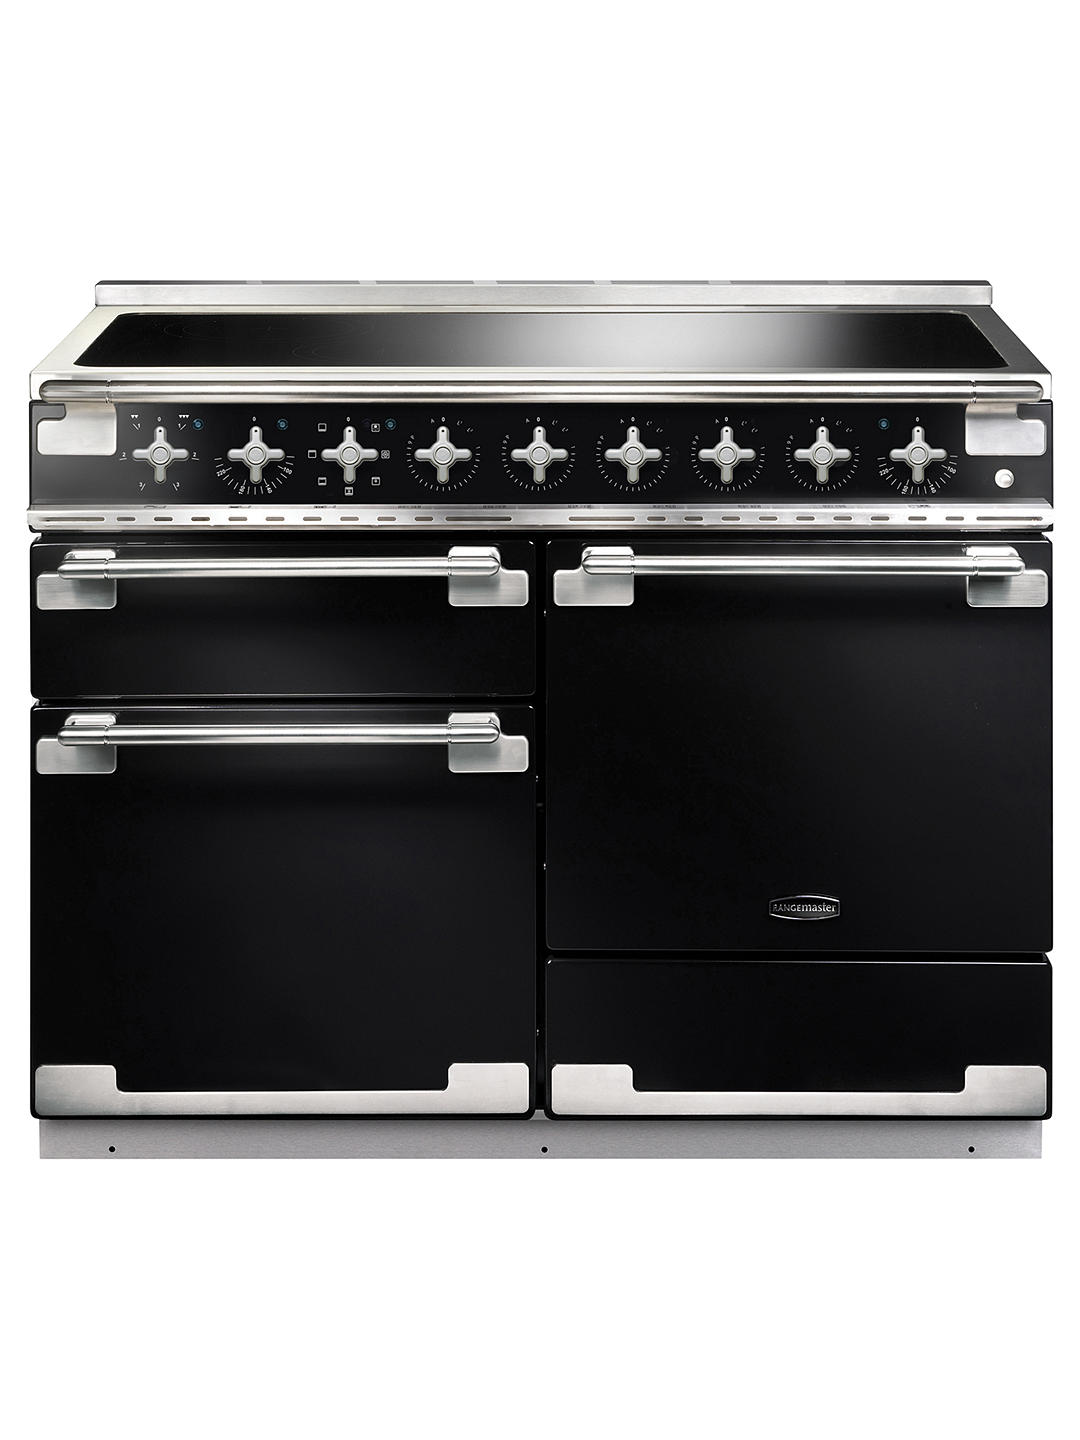 Buy Rangemaster Elise 110 Induction Hob Range Cooker, Gloss Black/Brushed Chrome Trim Online at johnlewis.com